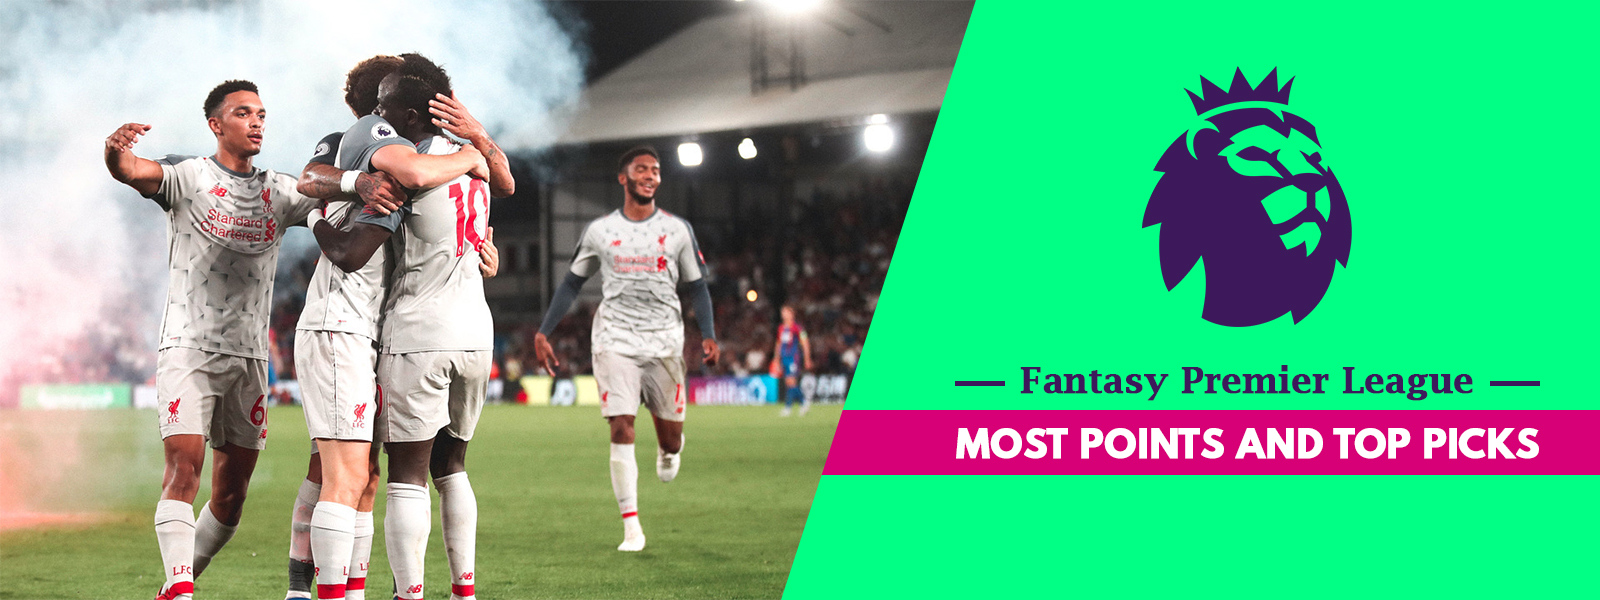 Most Points And Top Picks In Fantasy Premier League